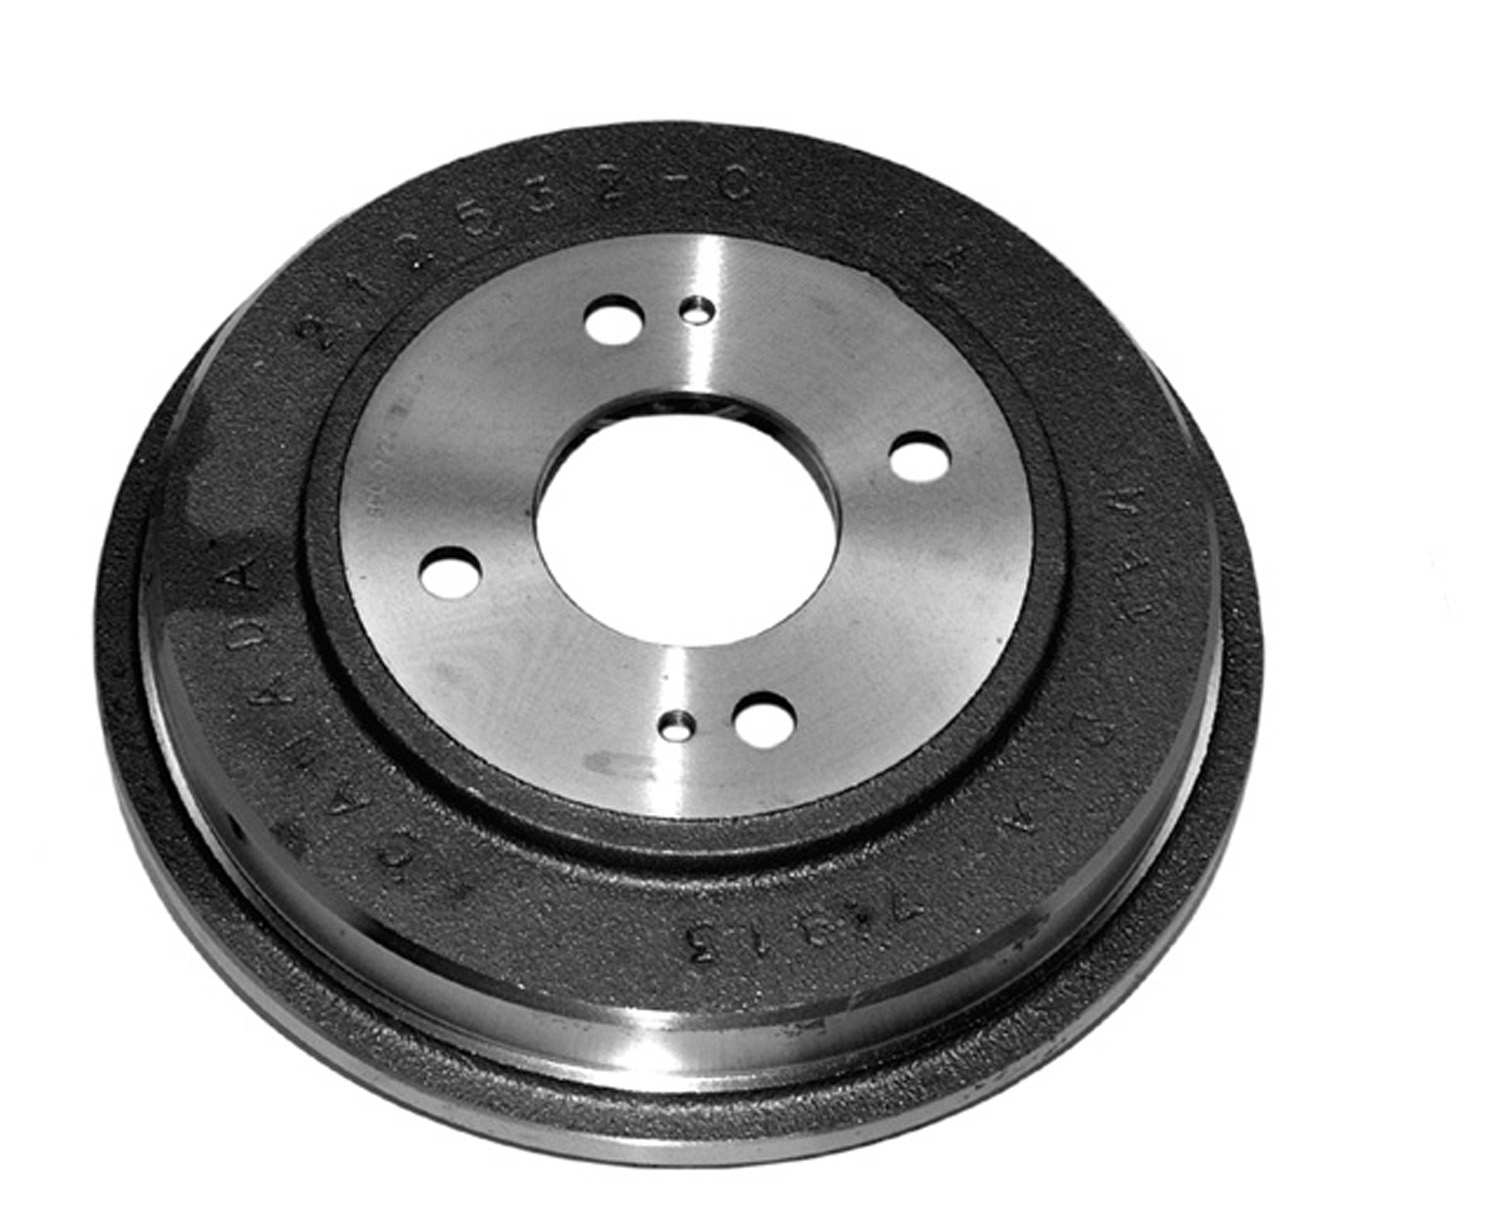 ACDELCO PROFESSIONAL BRAKES - Brake Drum (Rear) - ADU 18B537